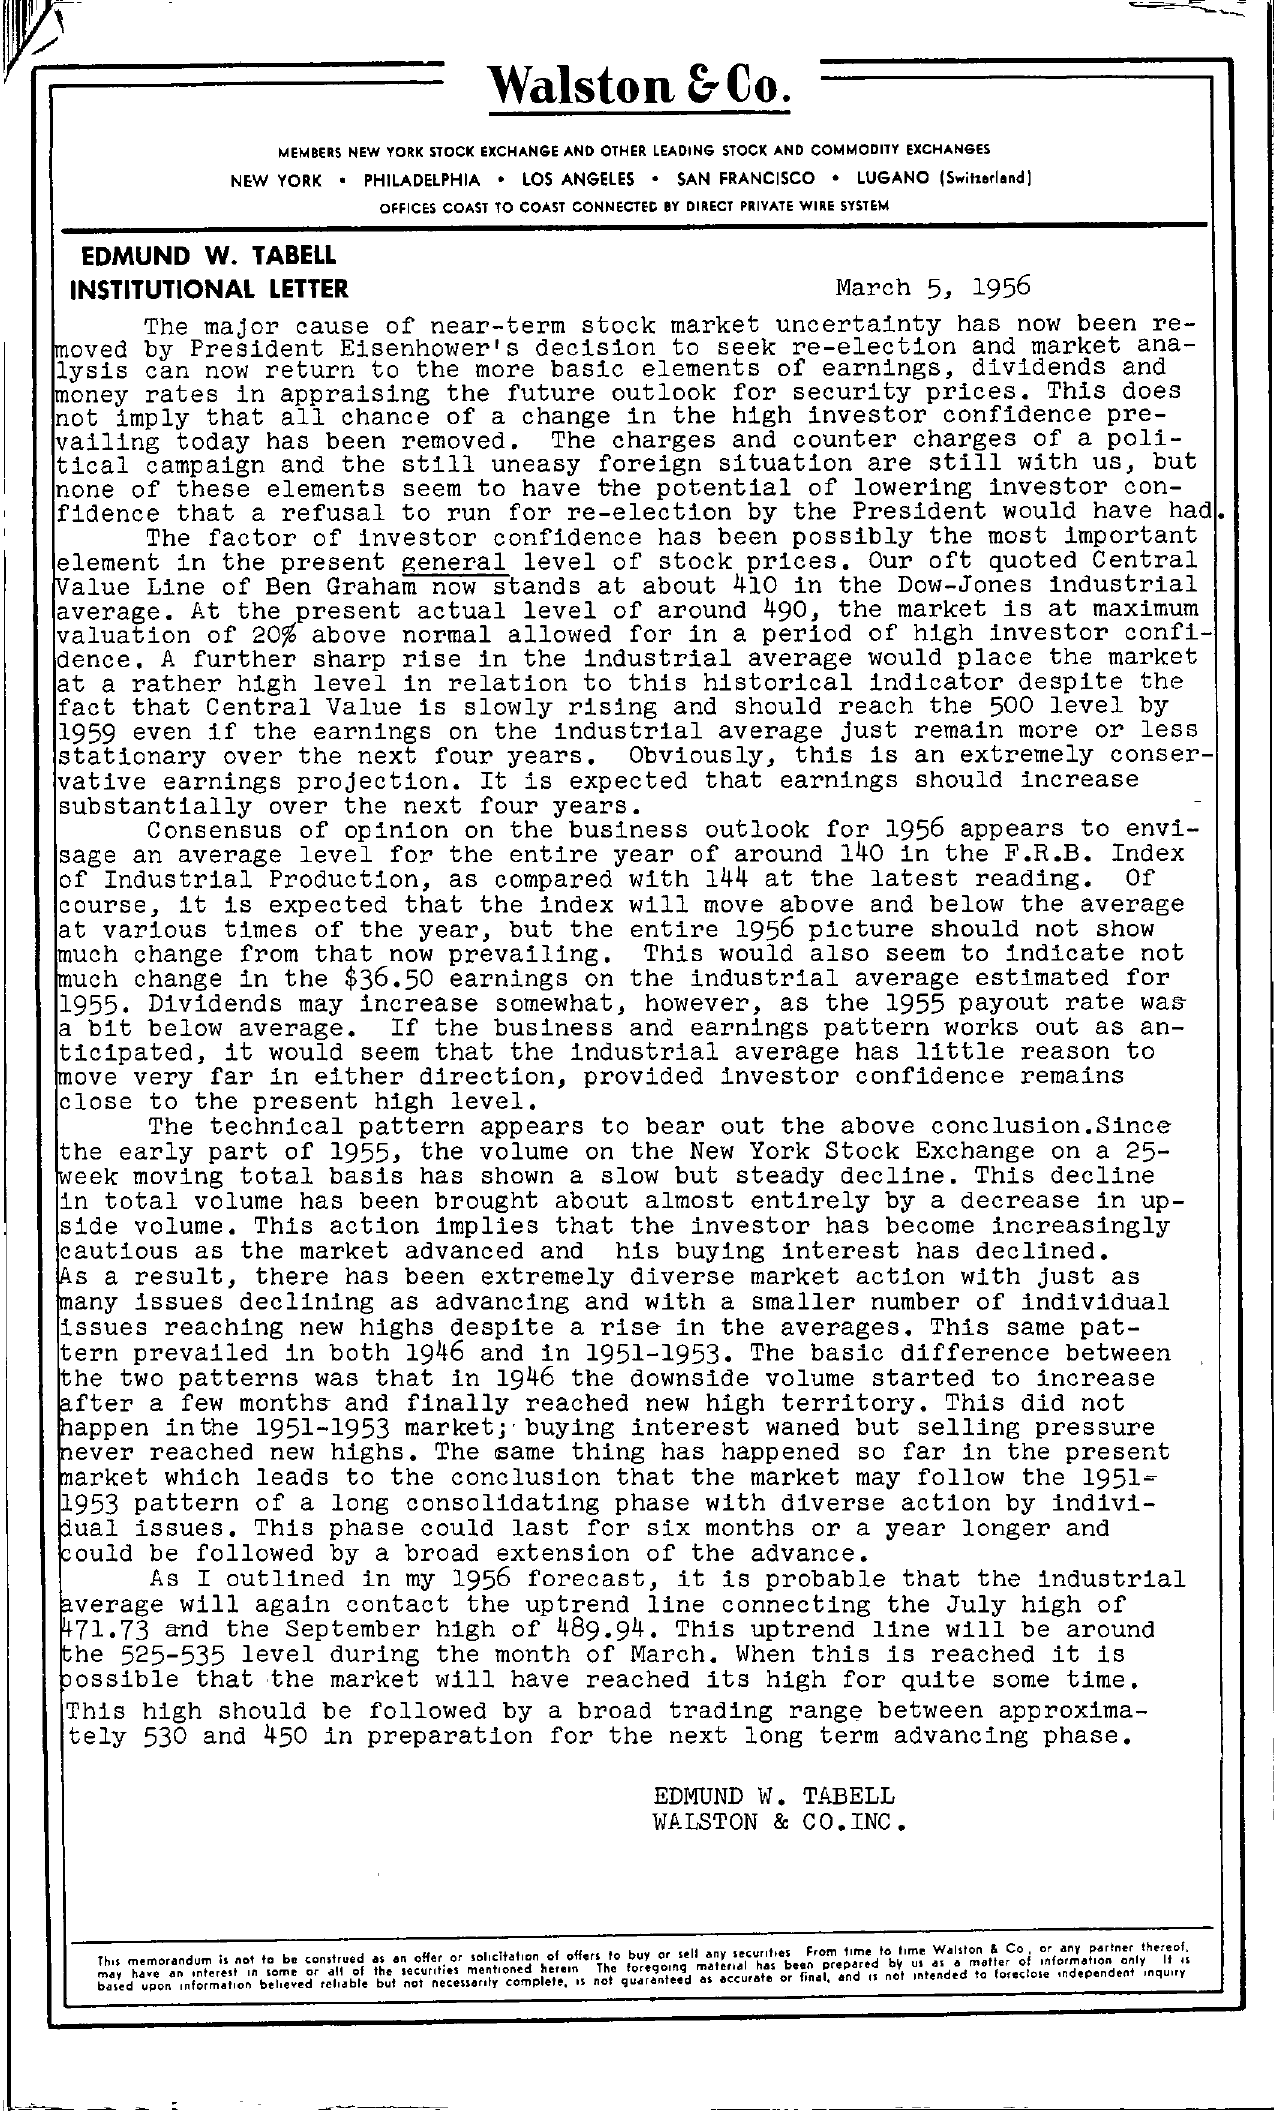 Tabell's Market Letter - March 05, 1956